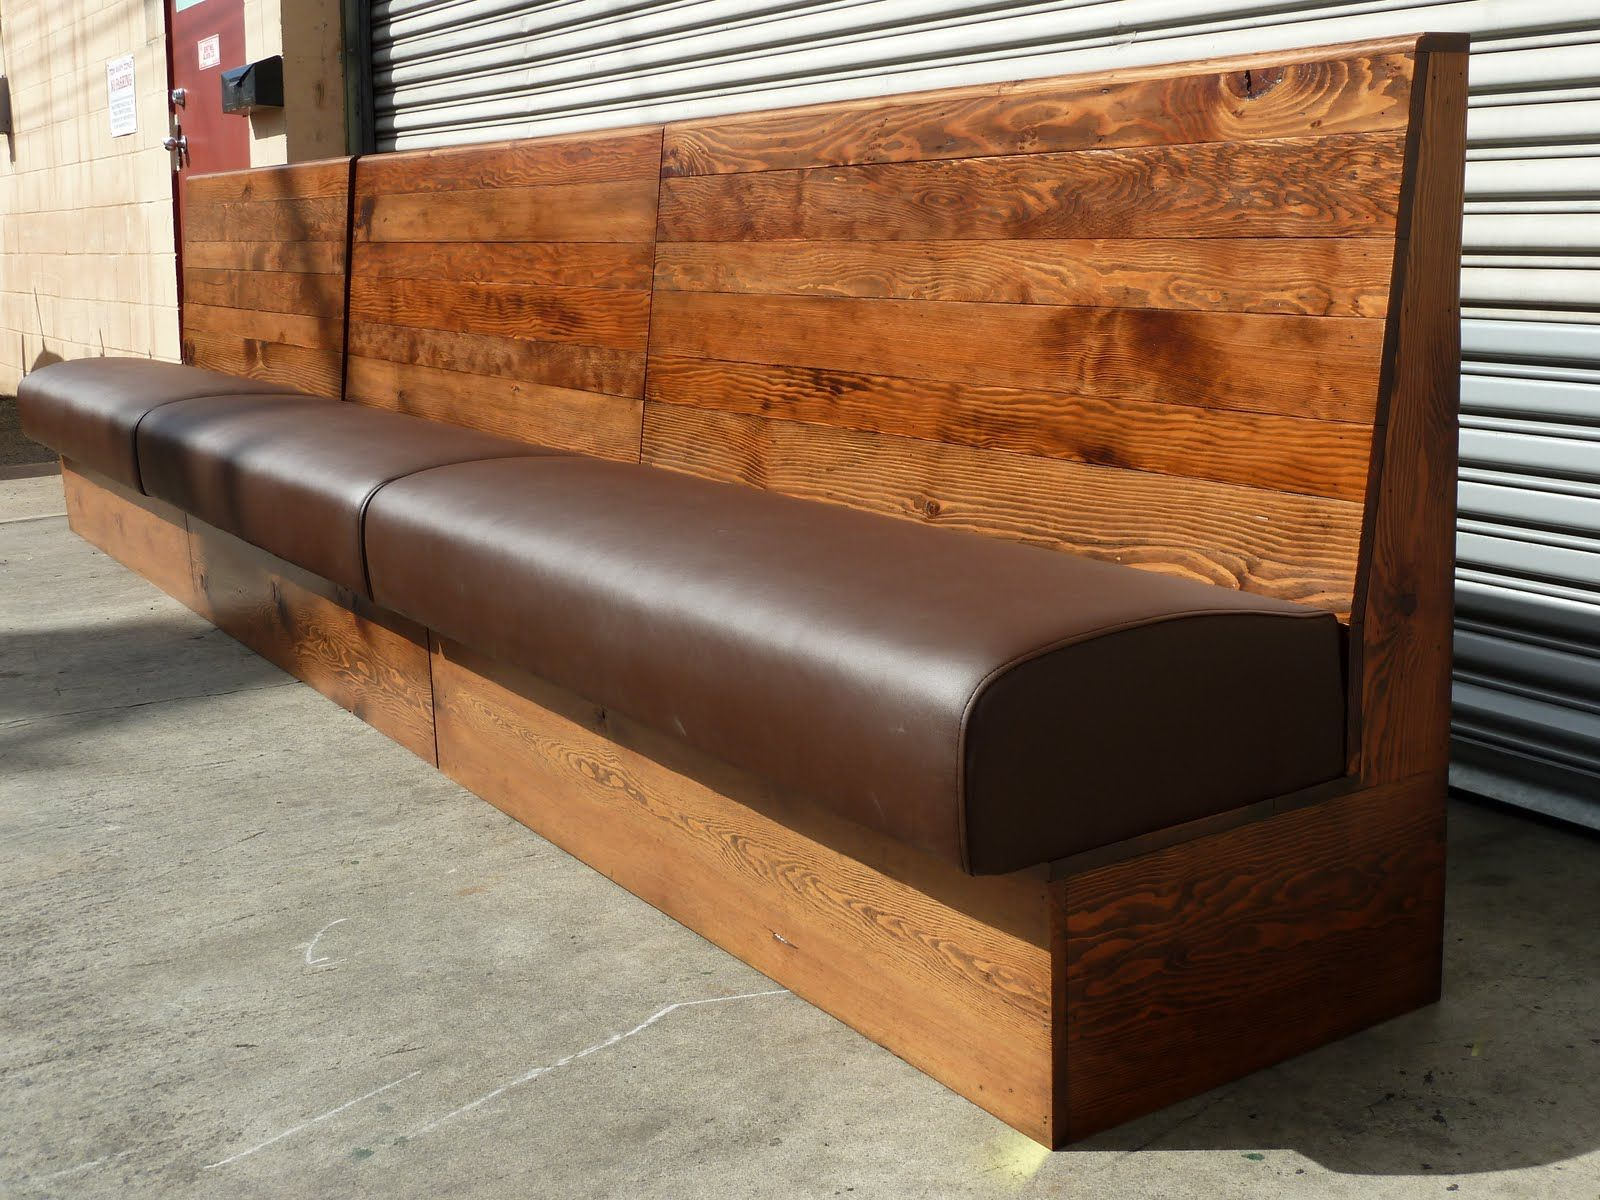 Wonderful Banquette Bench For Home Furniture Ideas Wooden Banquette Bench With Brown Leather Restaurant Booth Seating Dining Furniture Makeover Booth Seating